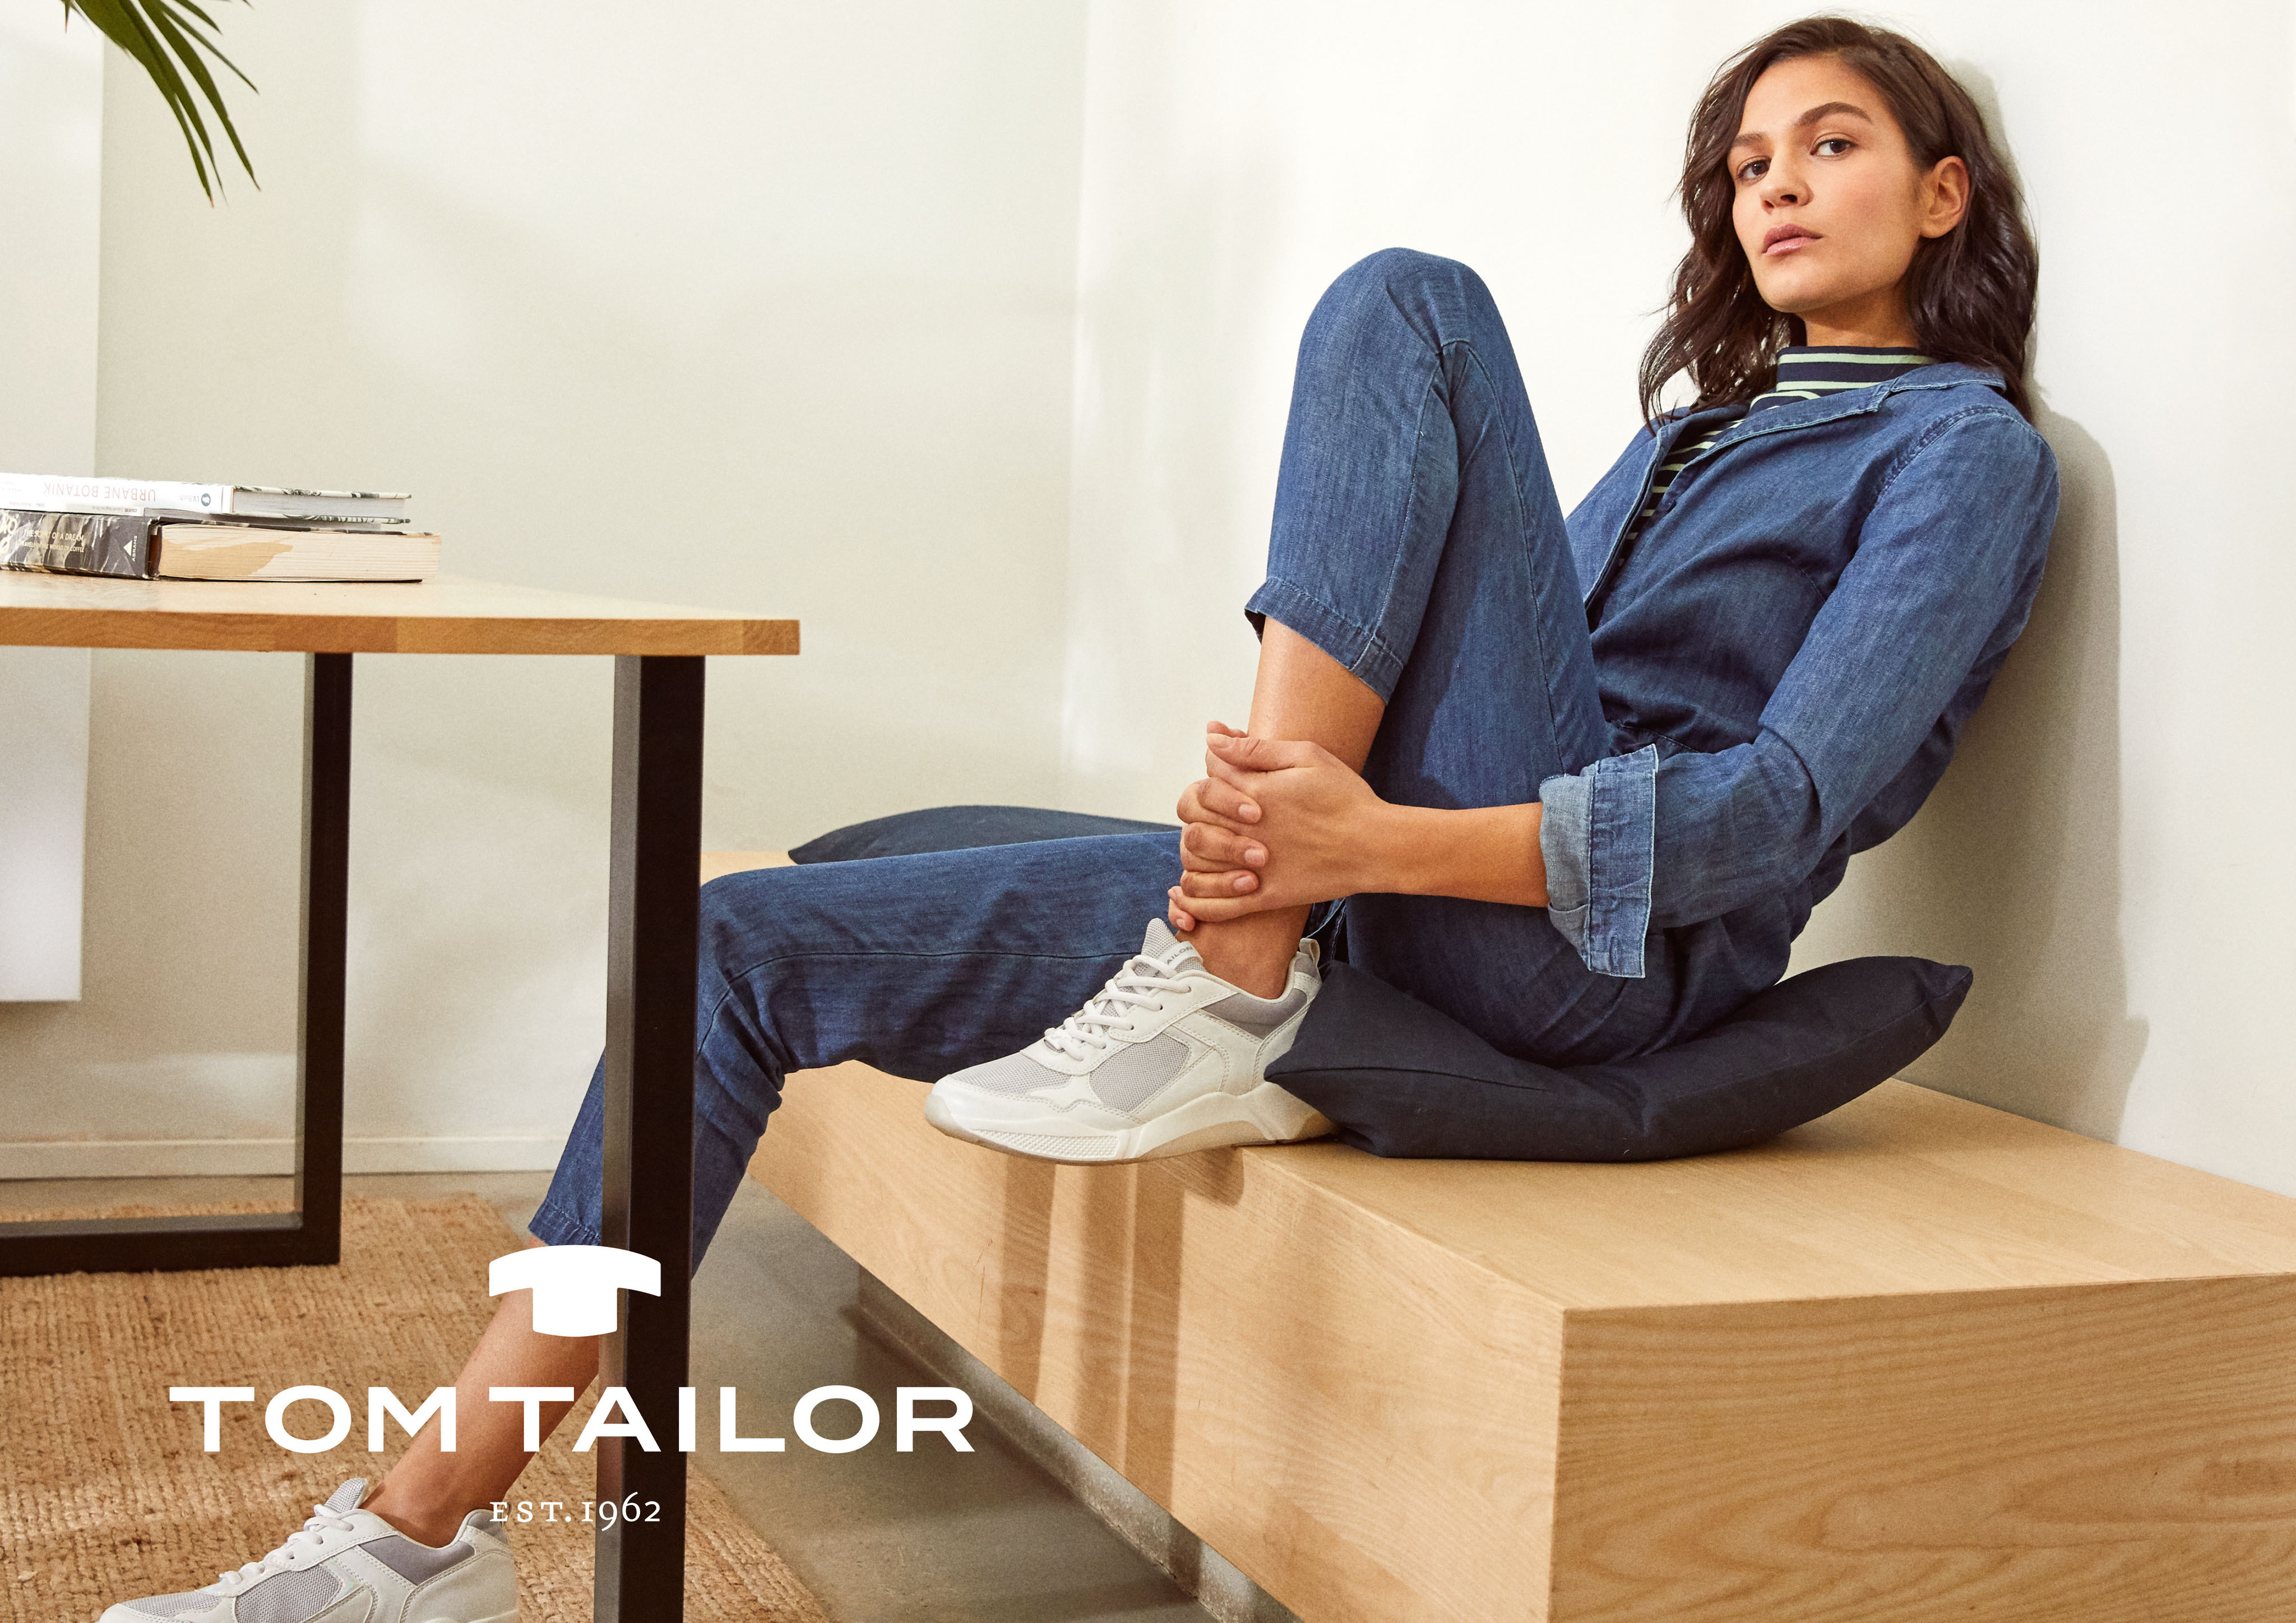 TOM-TAILOR_spring_summer_2020_original_FI_TT_A3_quer_mLogo_TT_WOMEN_002_KEYLOOK_04_1851_F39